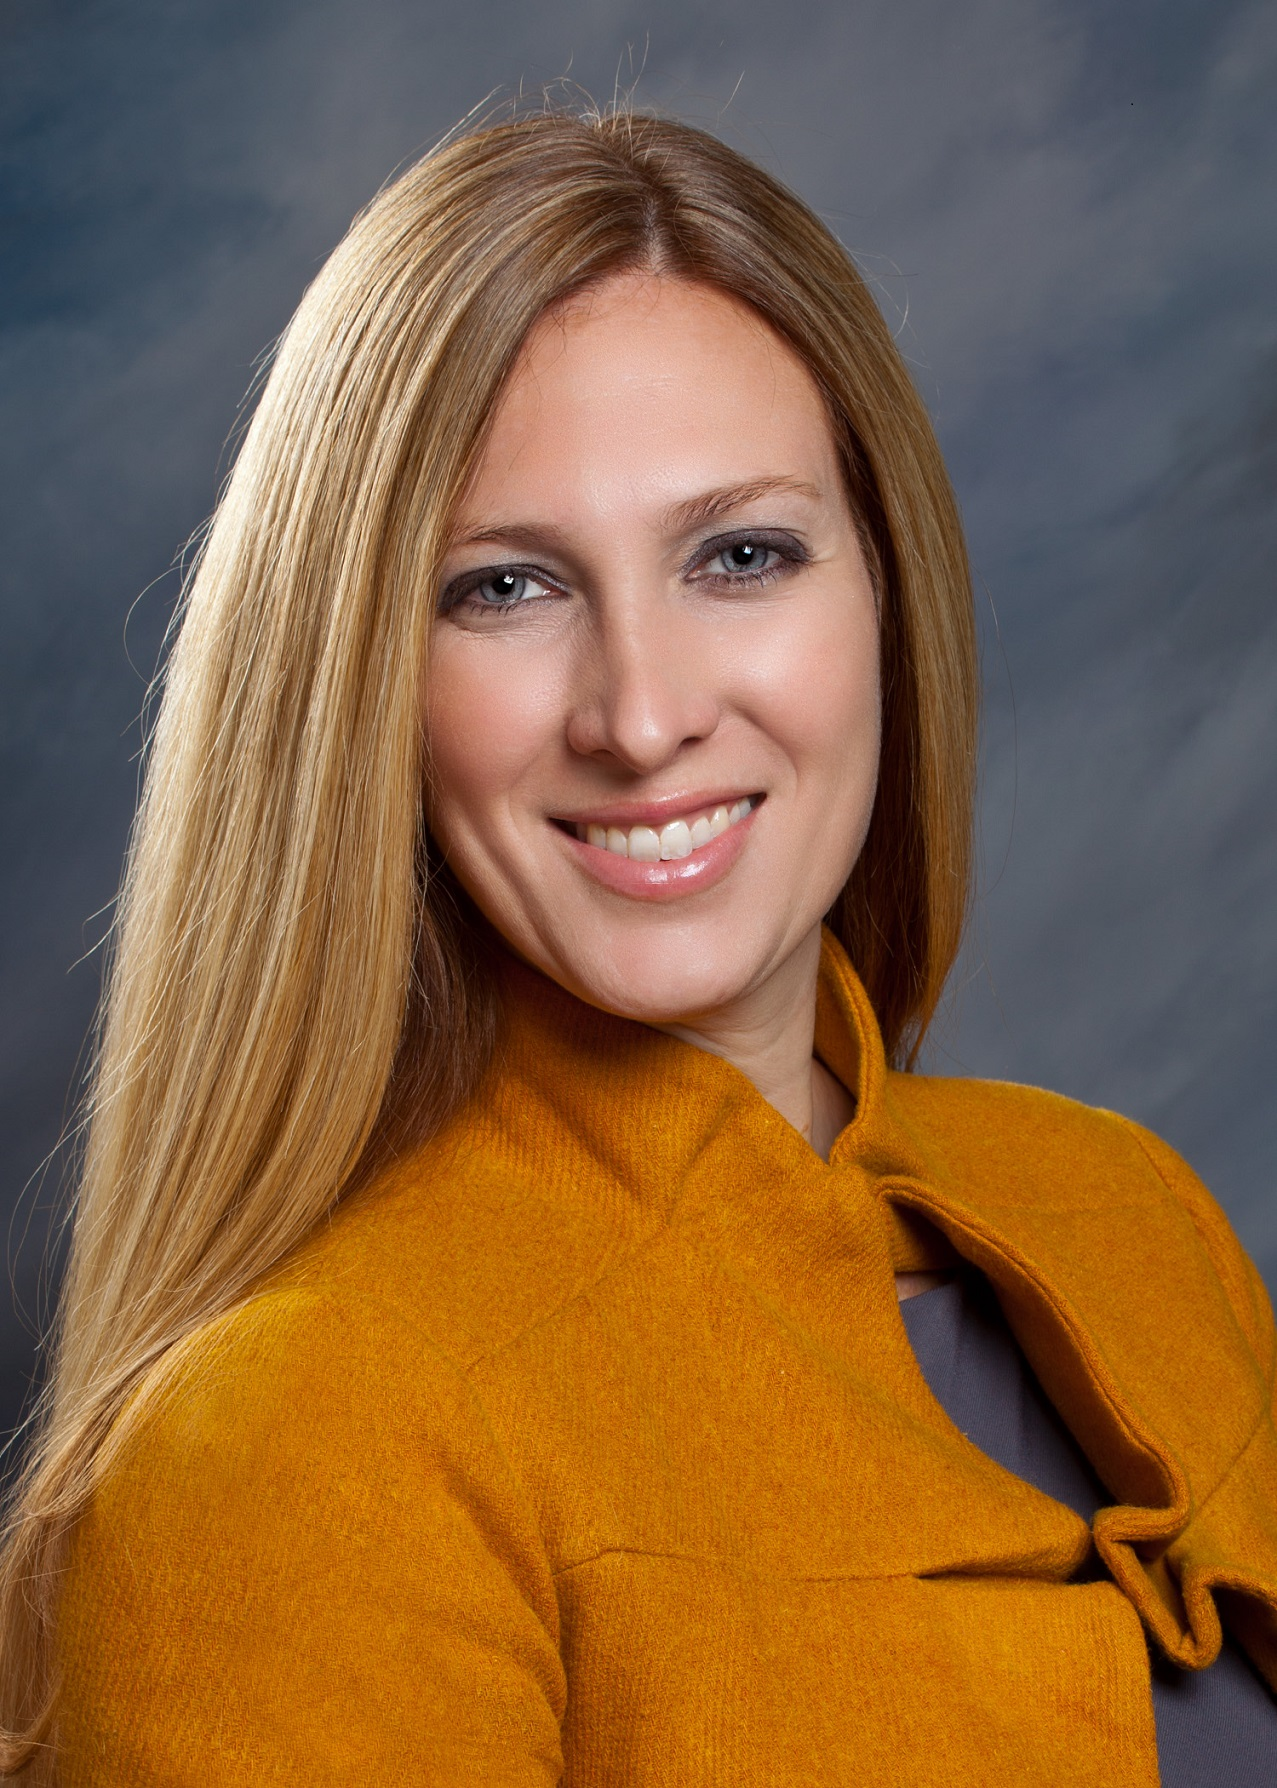 Kelly D., Executive Director